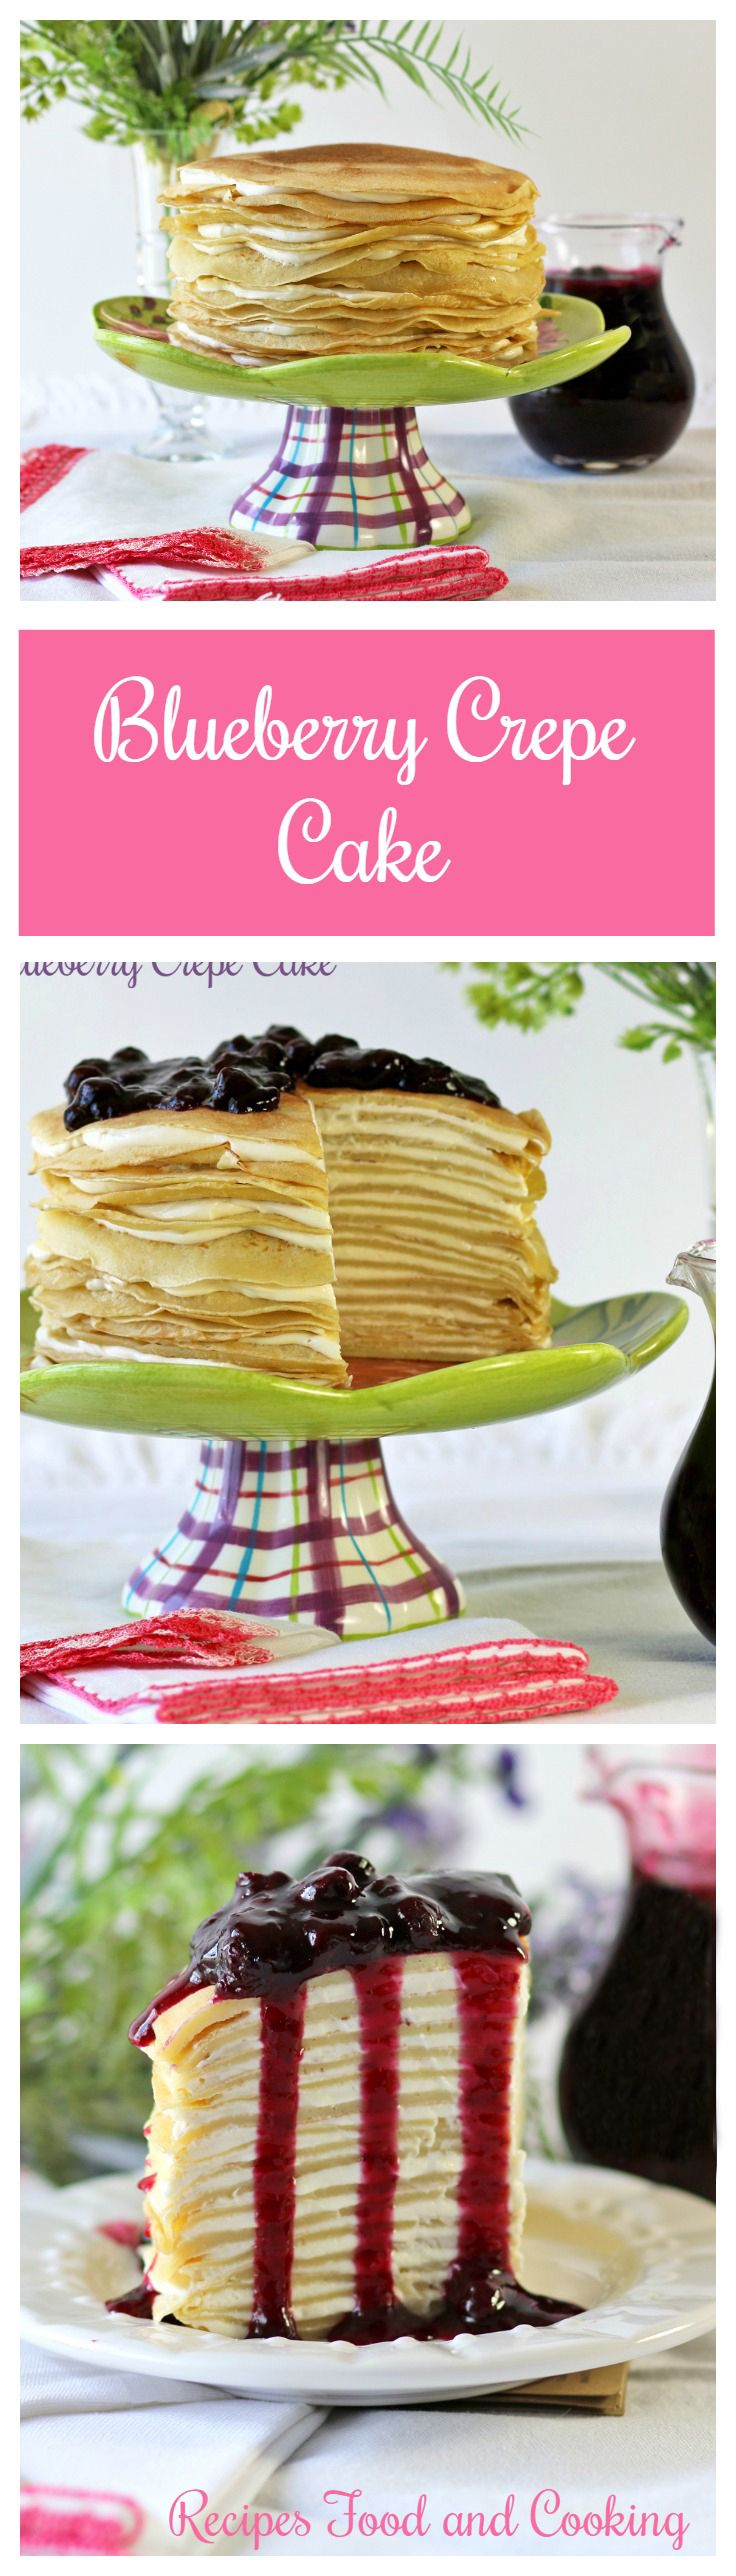 Blueberry Crepe Cake - Recipes, Food and Cooking